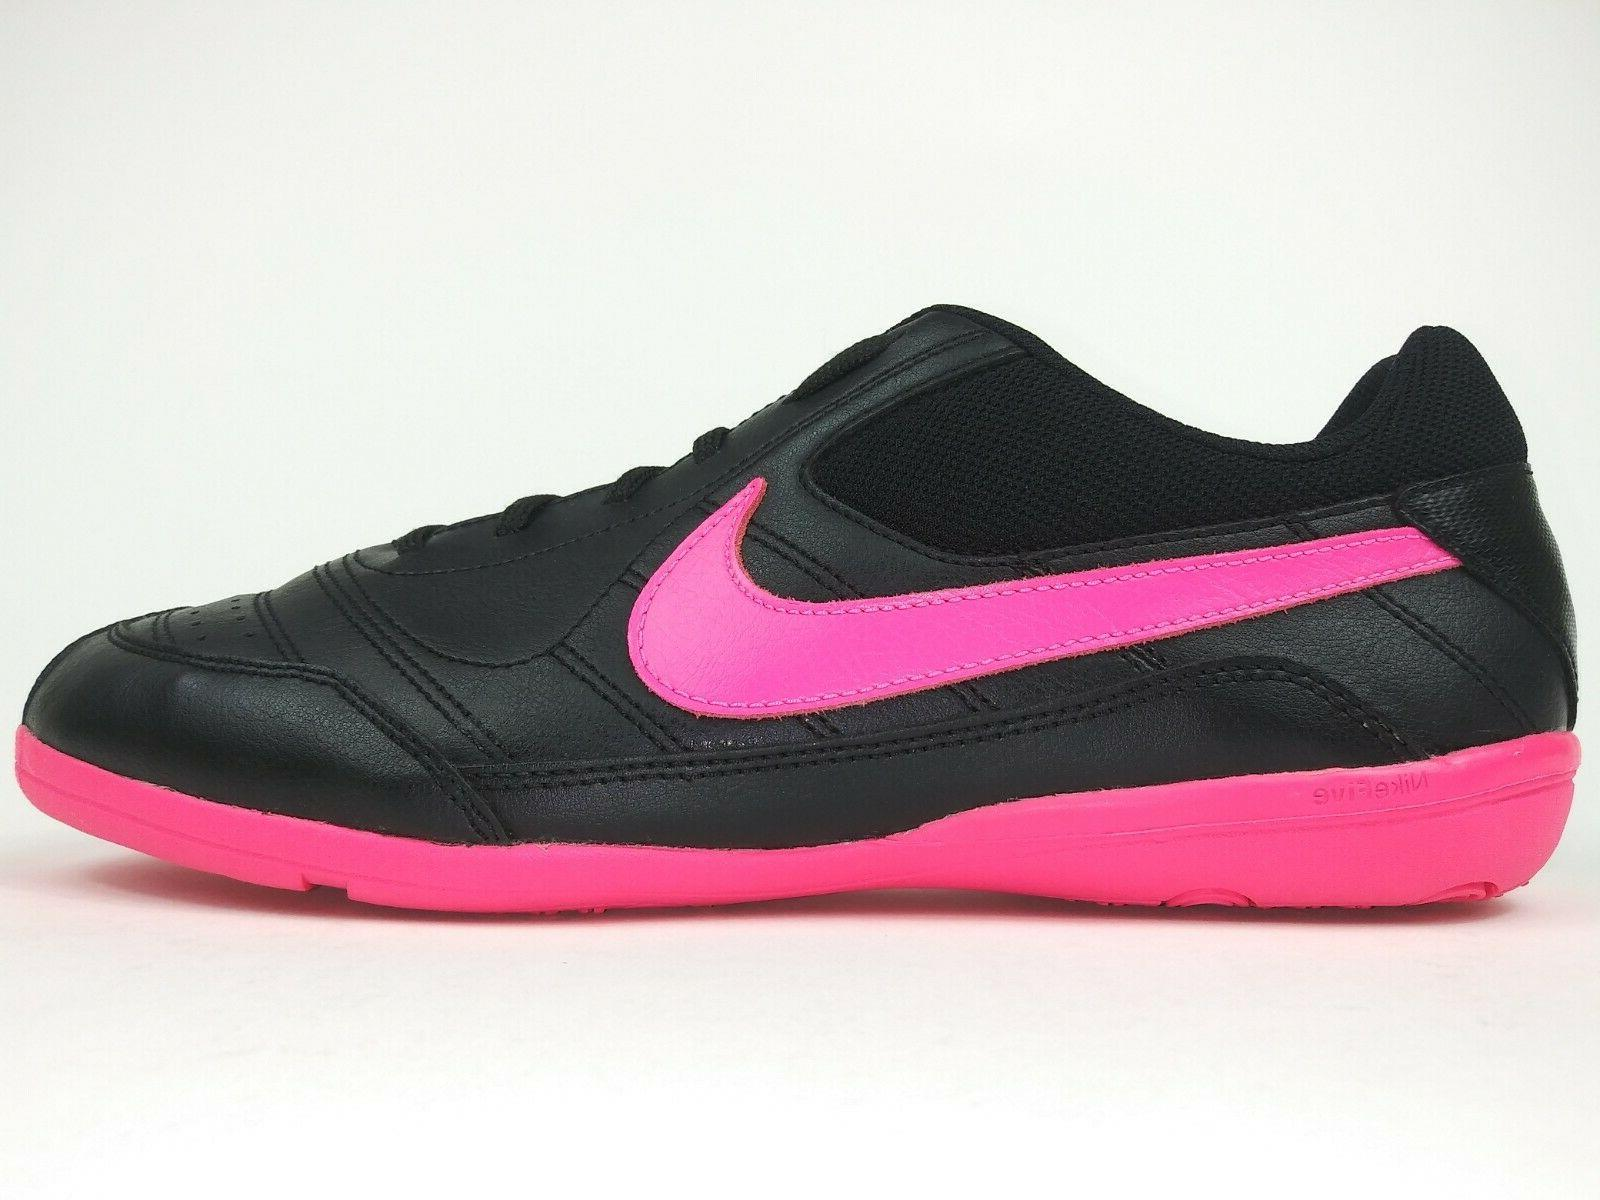 Nike Rare T-1 344919-067 Pink Shoes Cleats